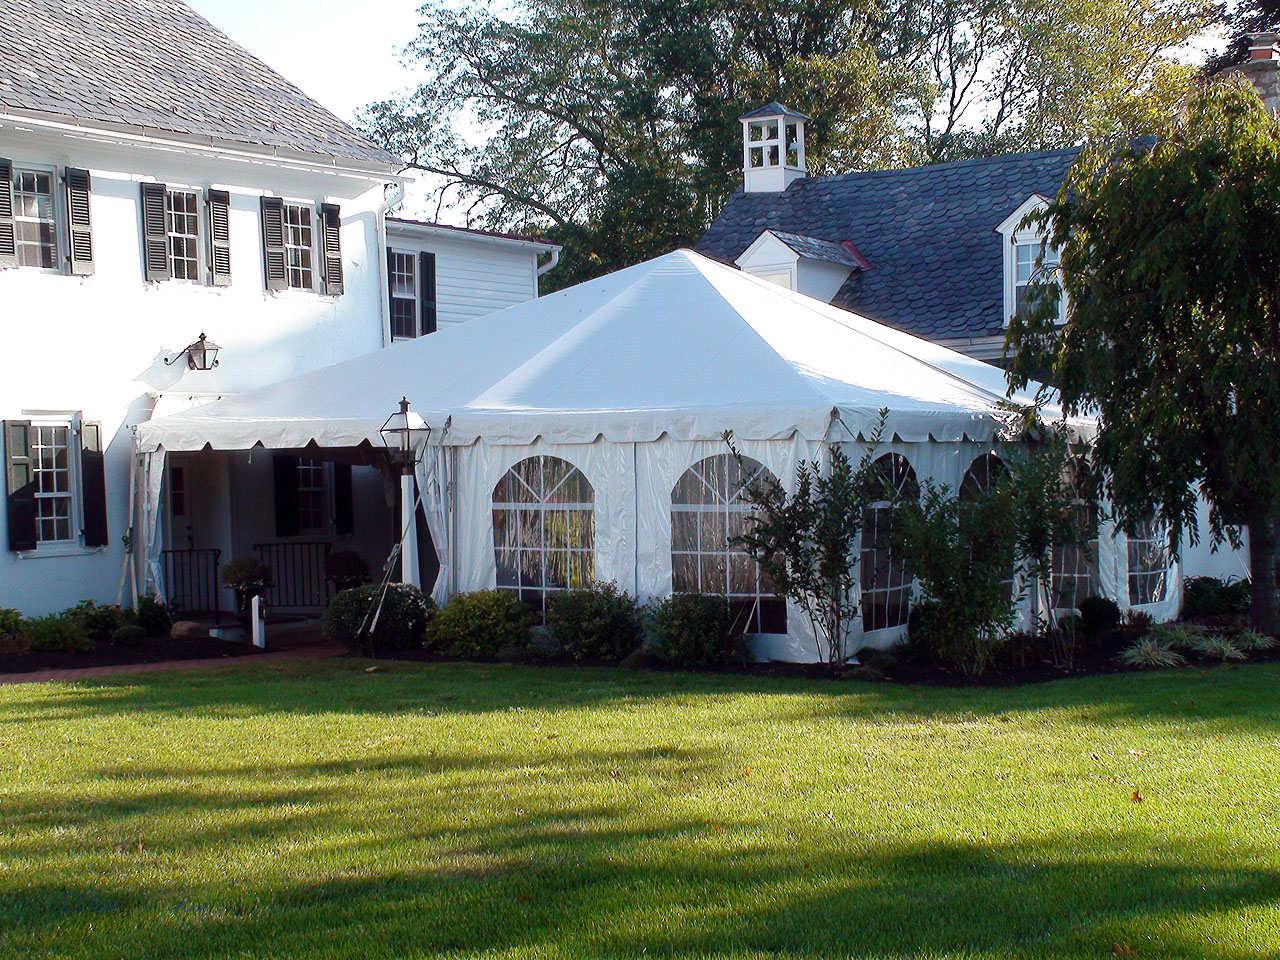 Frame tents for rent in Lebanon